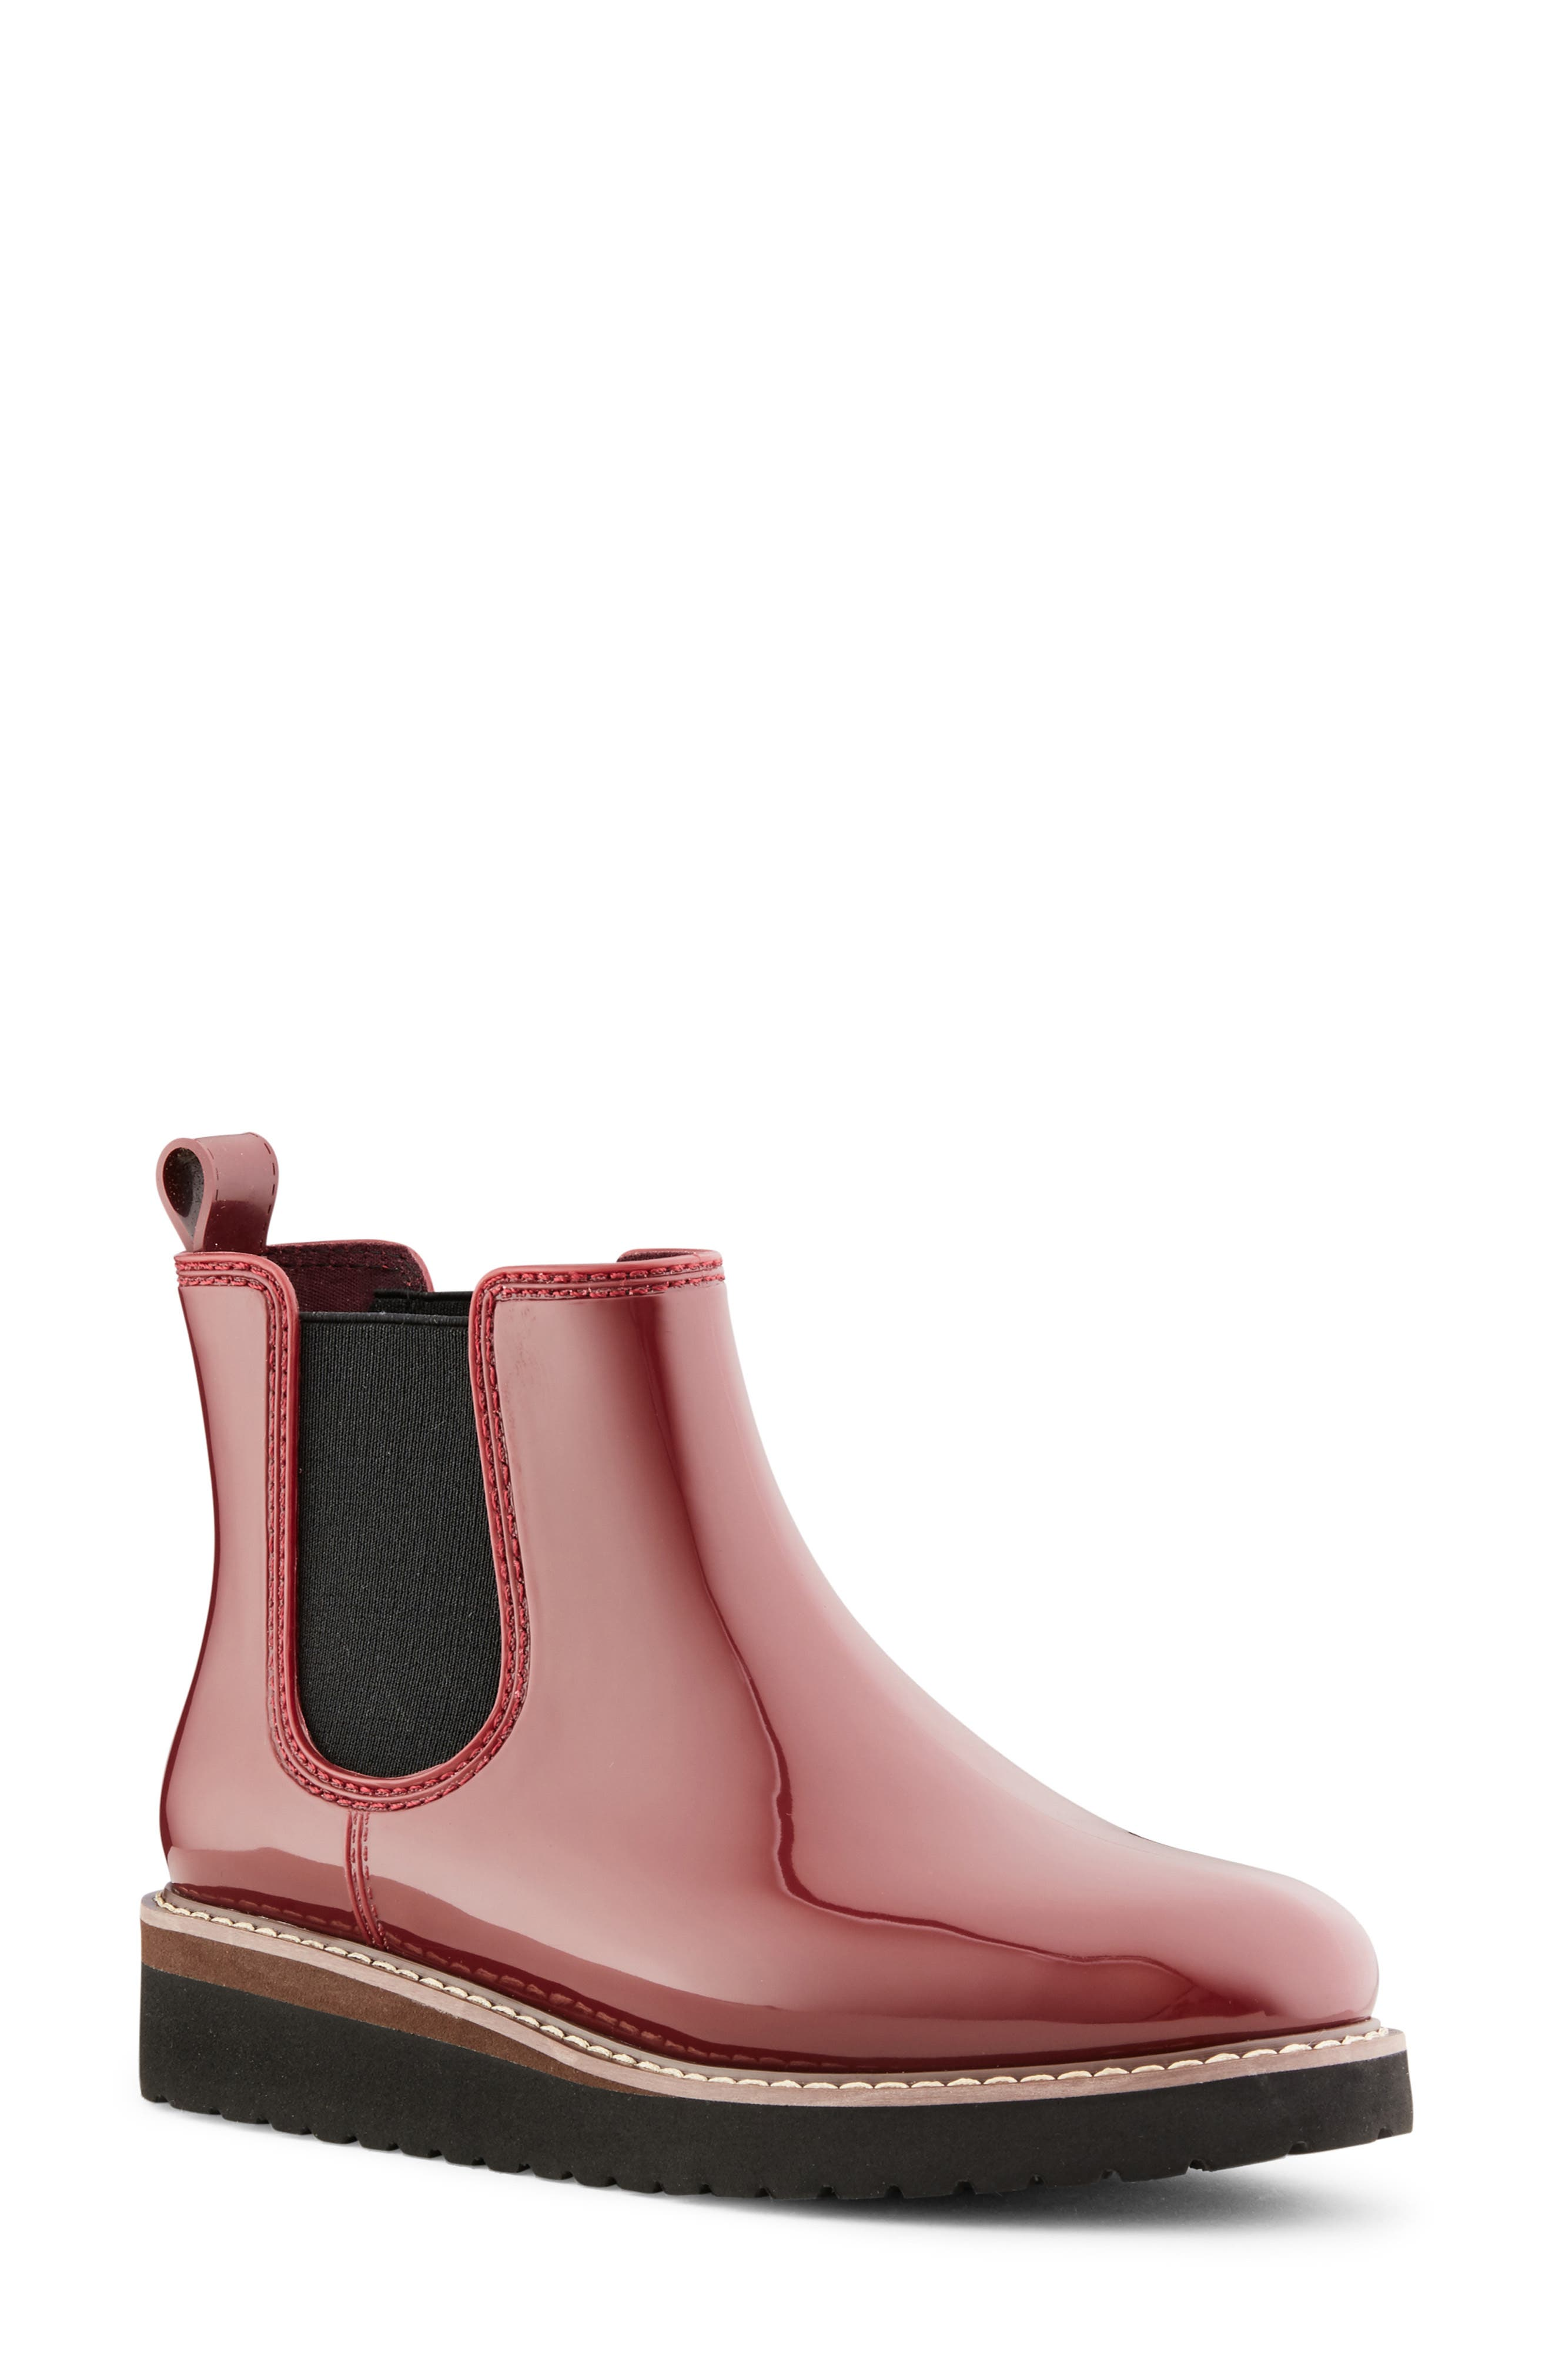 A splash-proof rain boot in an easy-on Chelsea silhouette is patterned in flowers and finished with anti-slip treads. Style Name: Cougar Kensington Chelsea Rain Boot (Women). Style Number: 5550733. Available in stores.